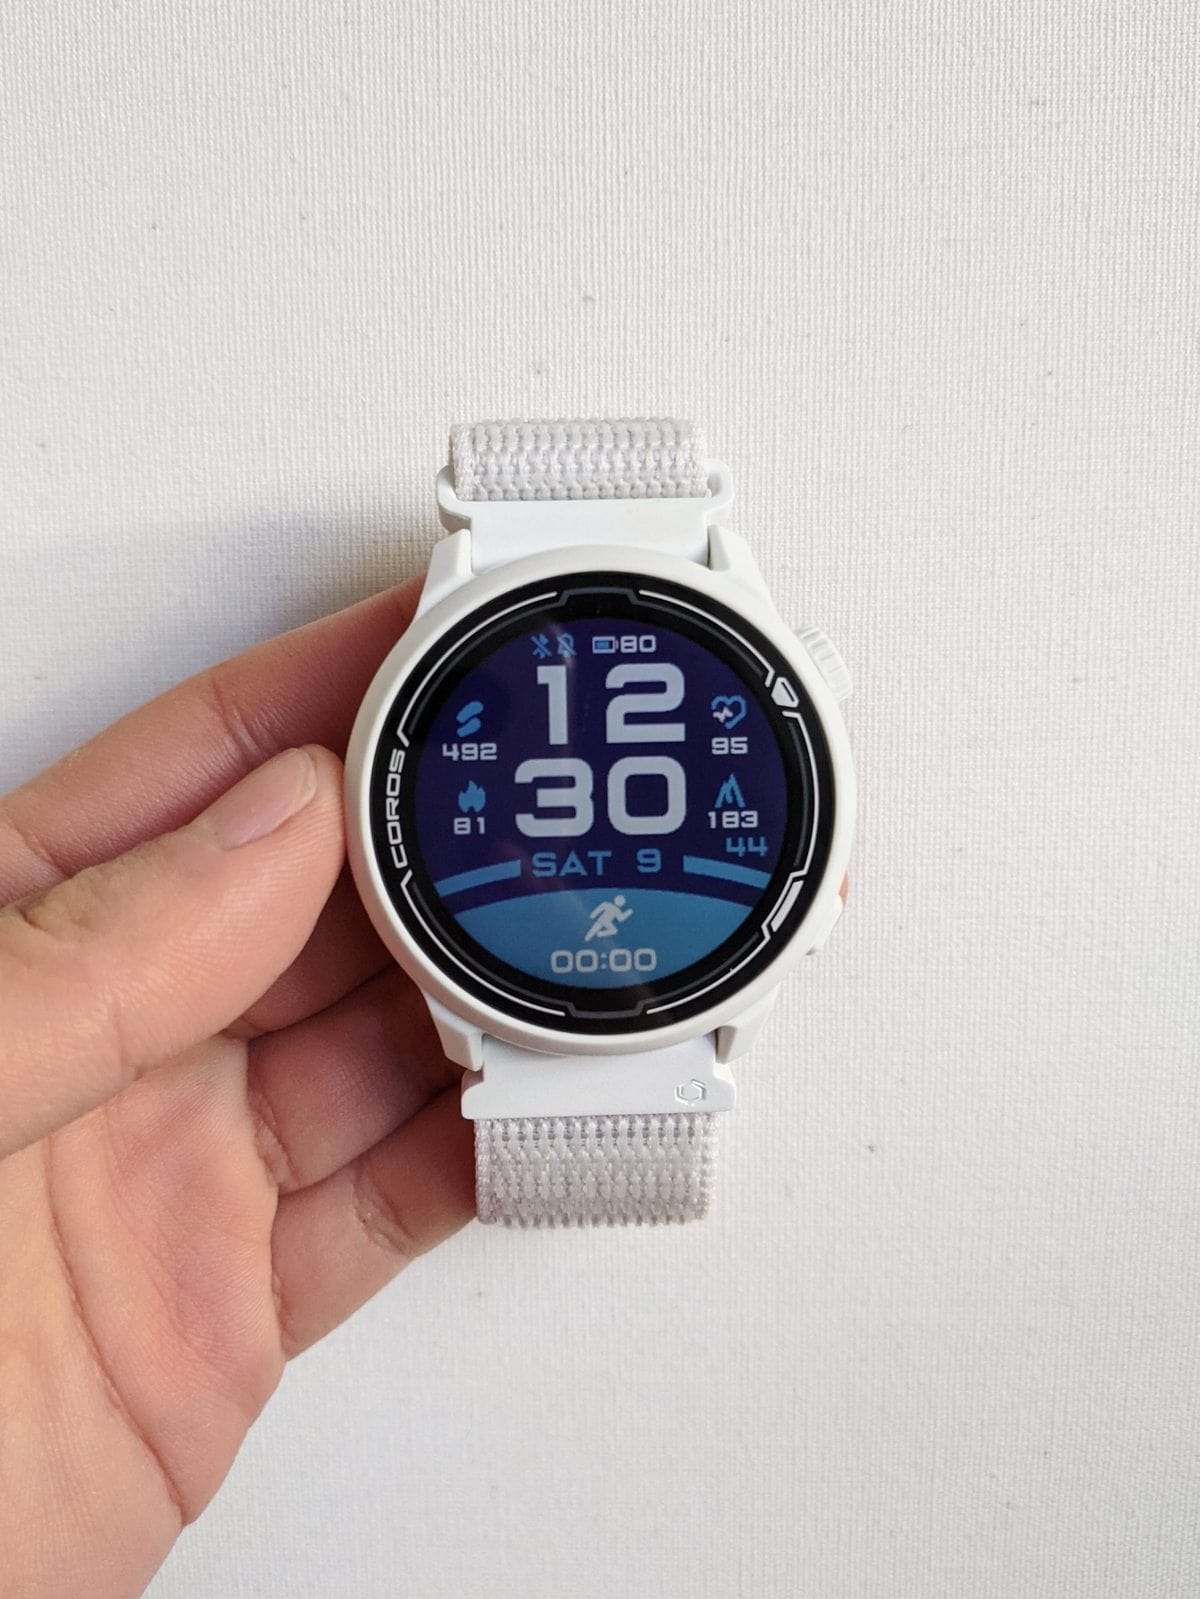 Coros Pace 2 in white with a nylon band with the default blue watch face